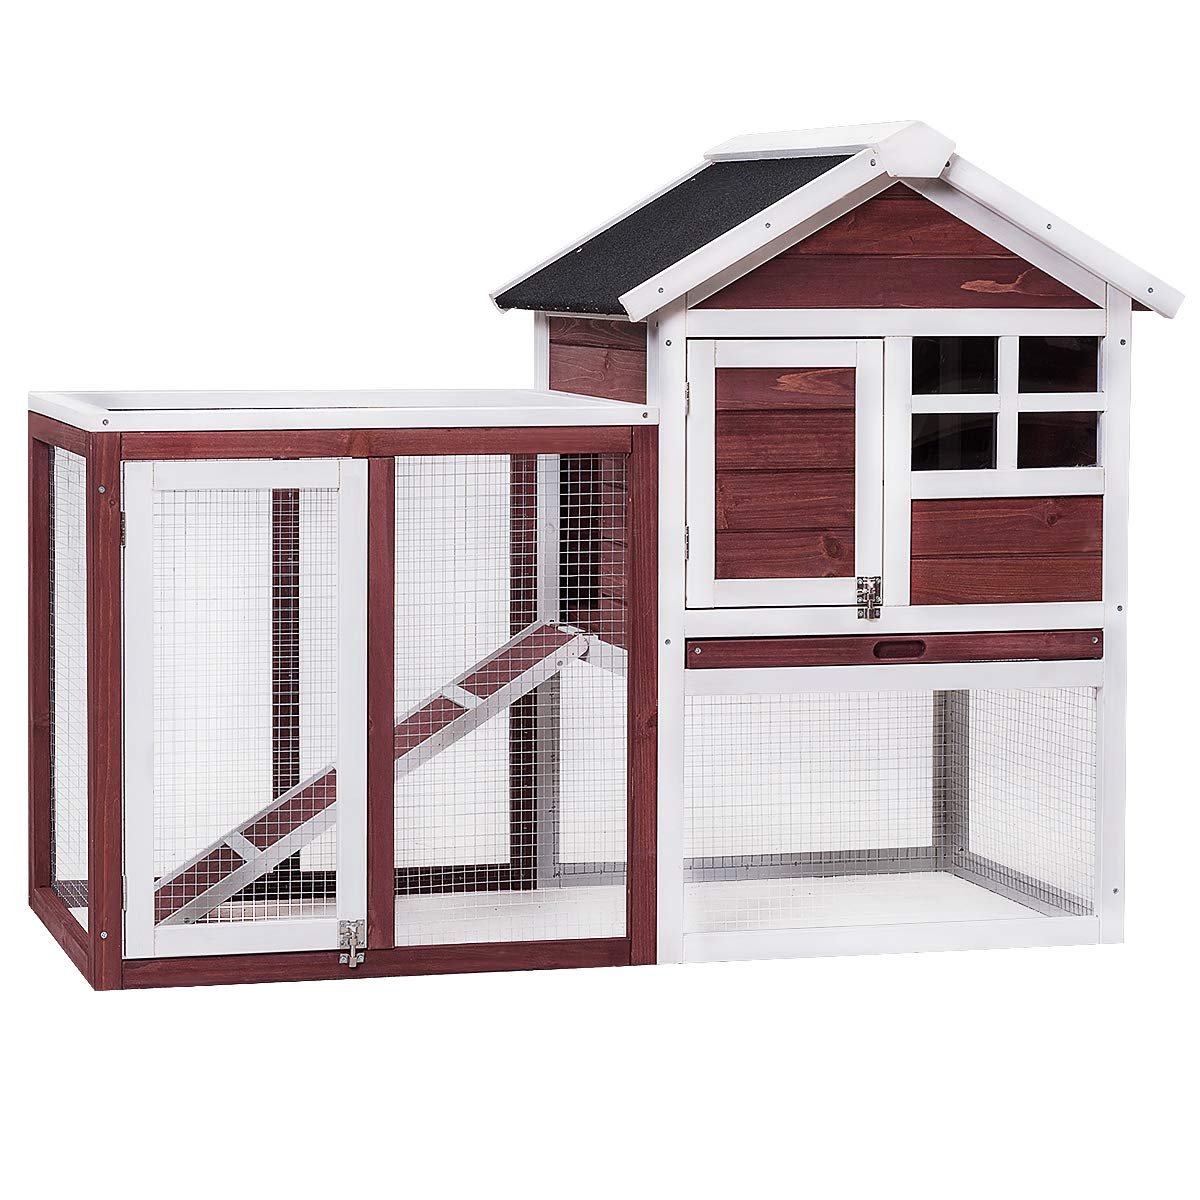 Tangkula Large Chicken Coop Wooden Rabbit Hutch Outdoor Garden Backyard Hen House Wood Pet House Poultry Cage with Outdoor Run (Red-Brown) by Tangkula